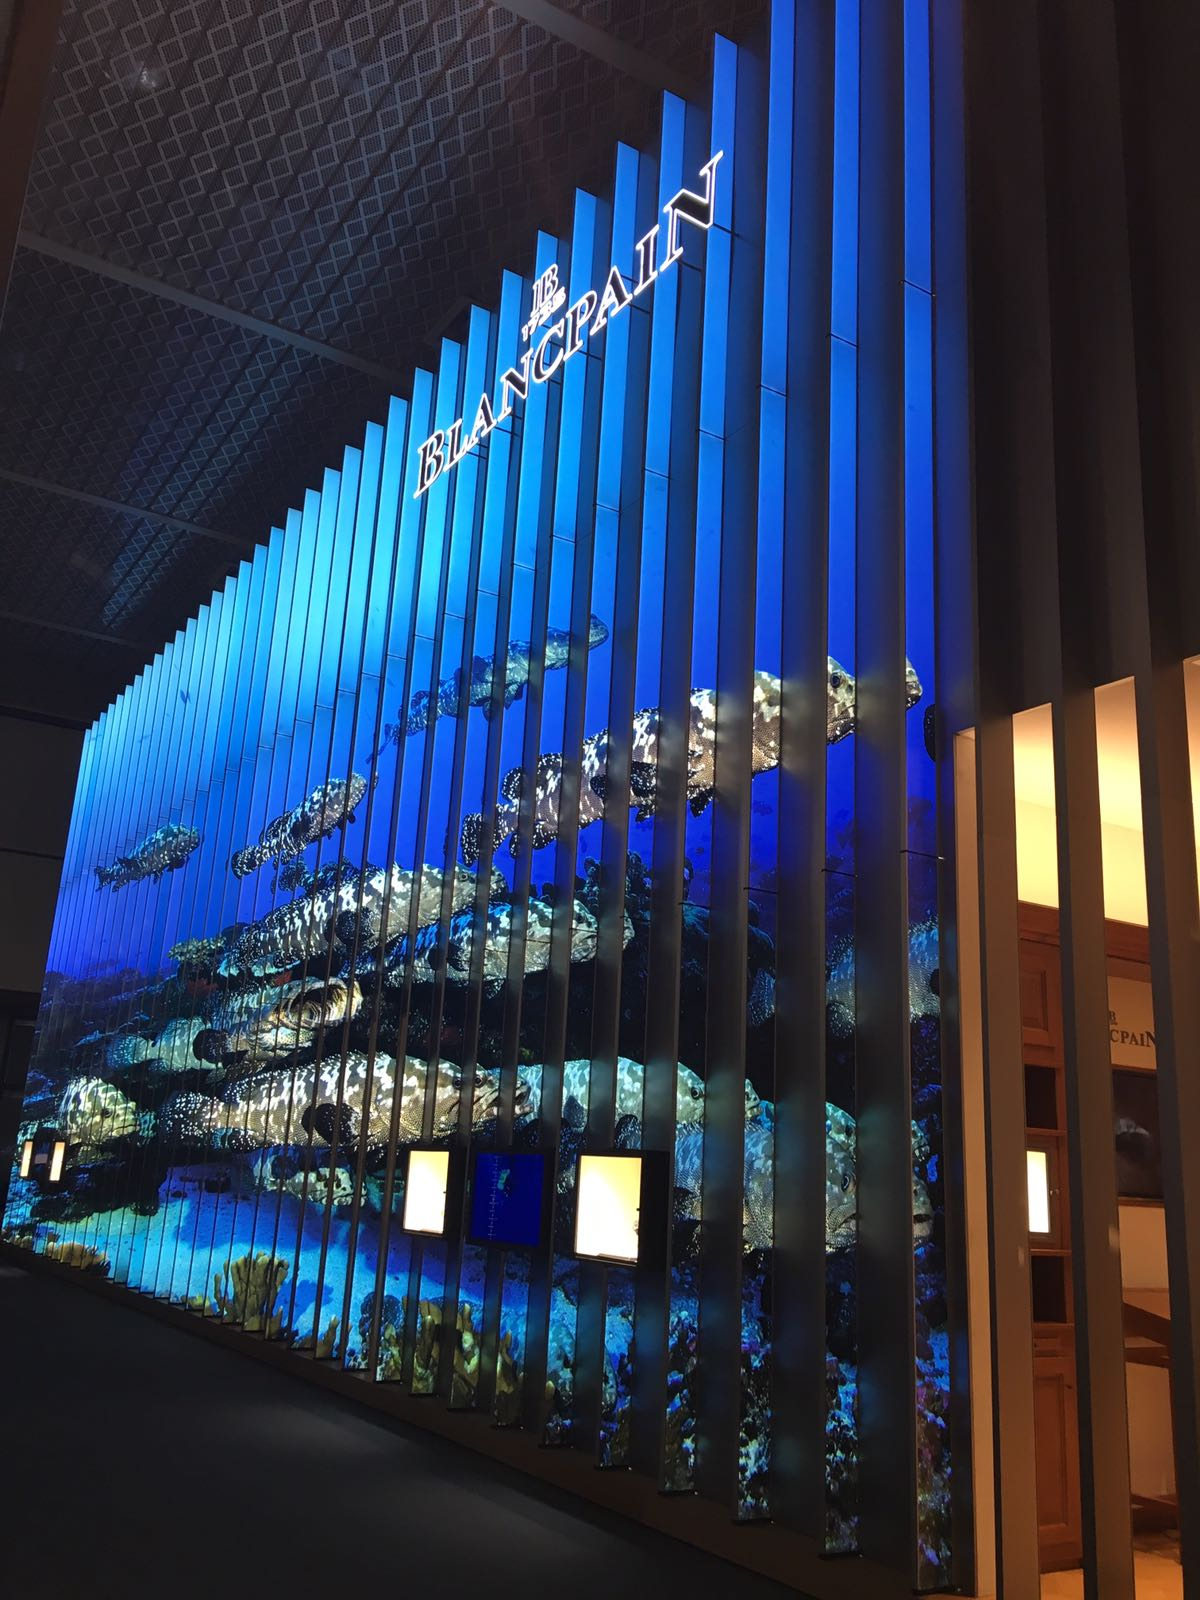 baselworld 2017 Best of Baselworld 2017 in Pictures Best of Baselworld 2017 in Pictures 14